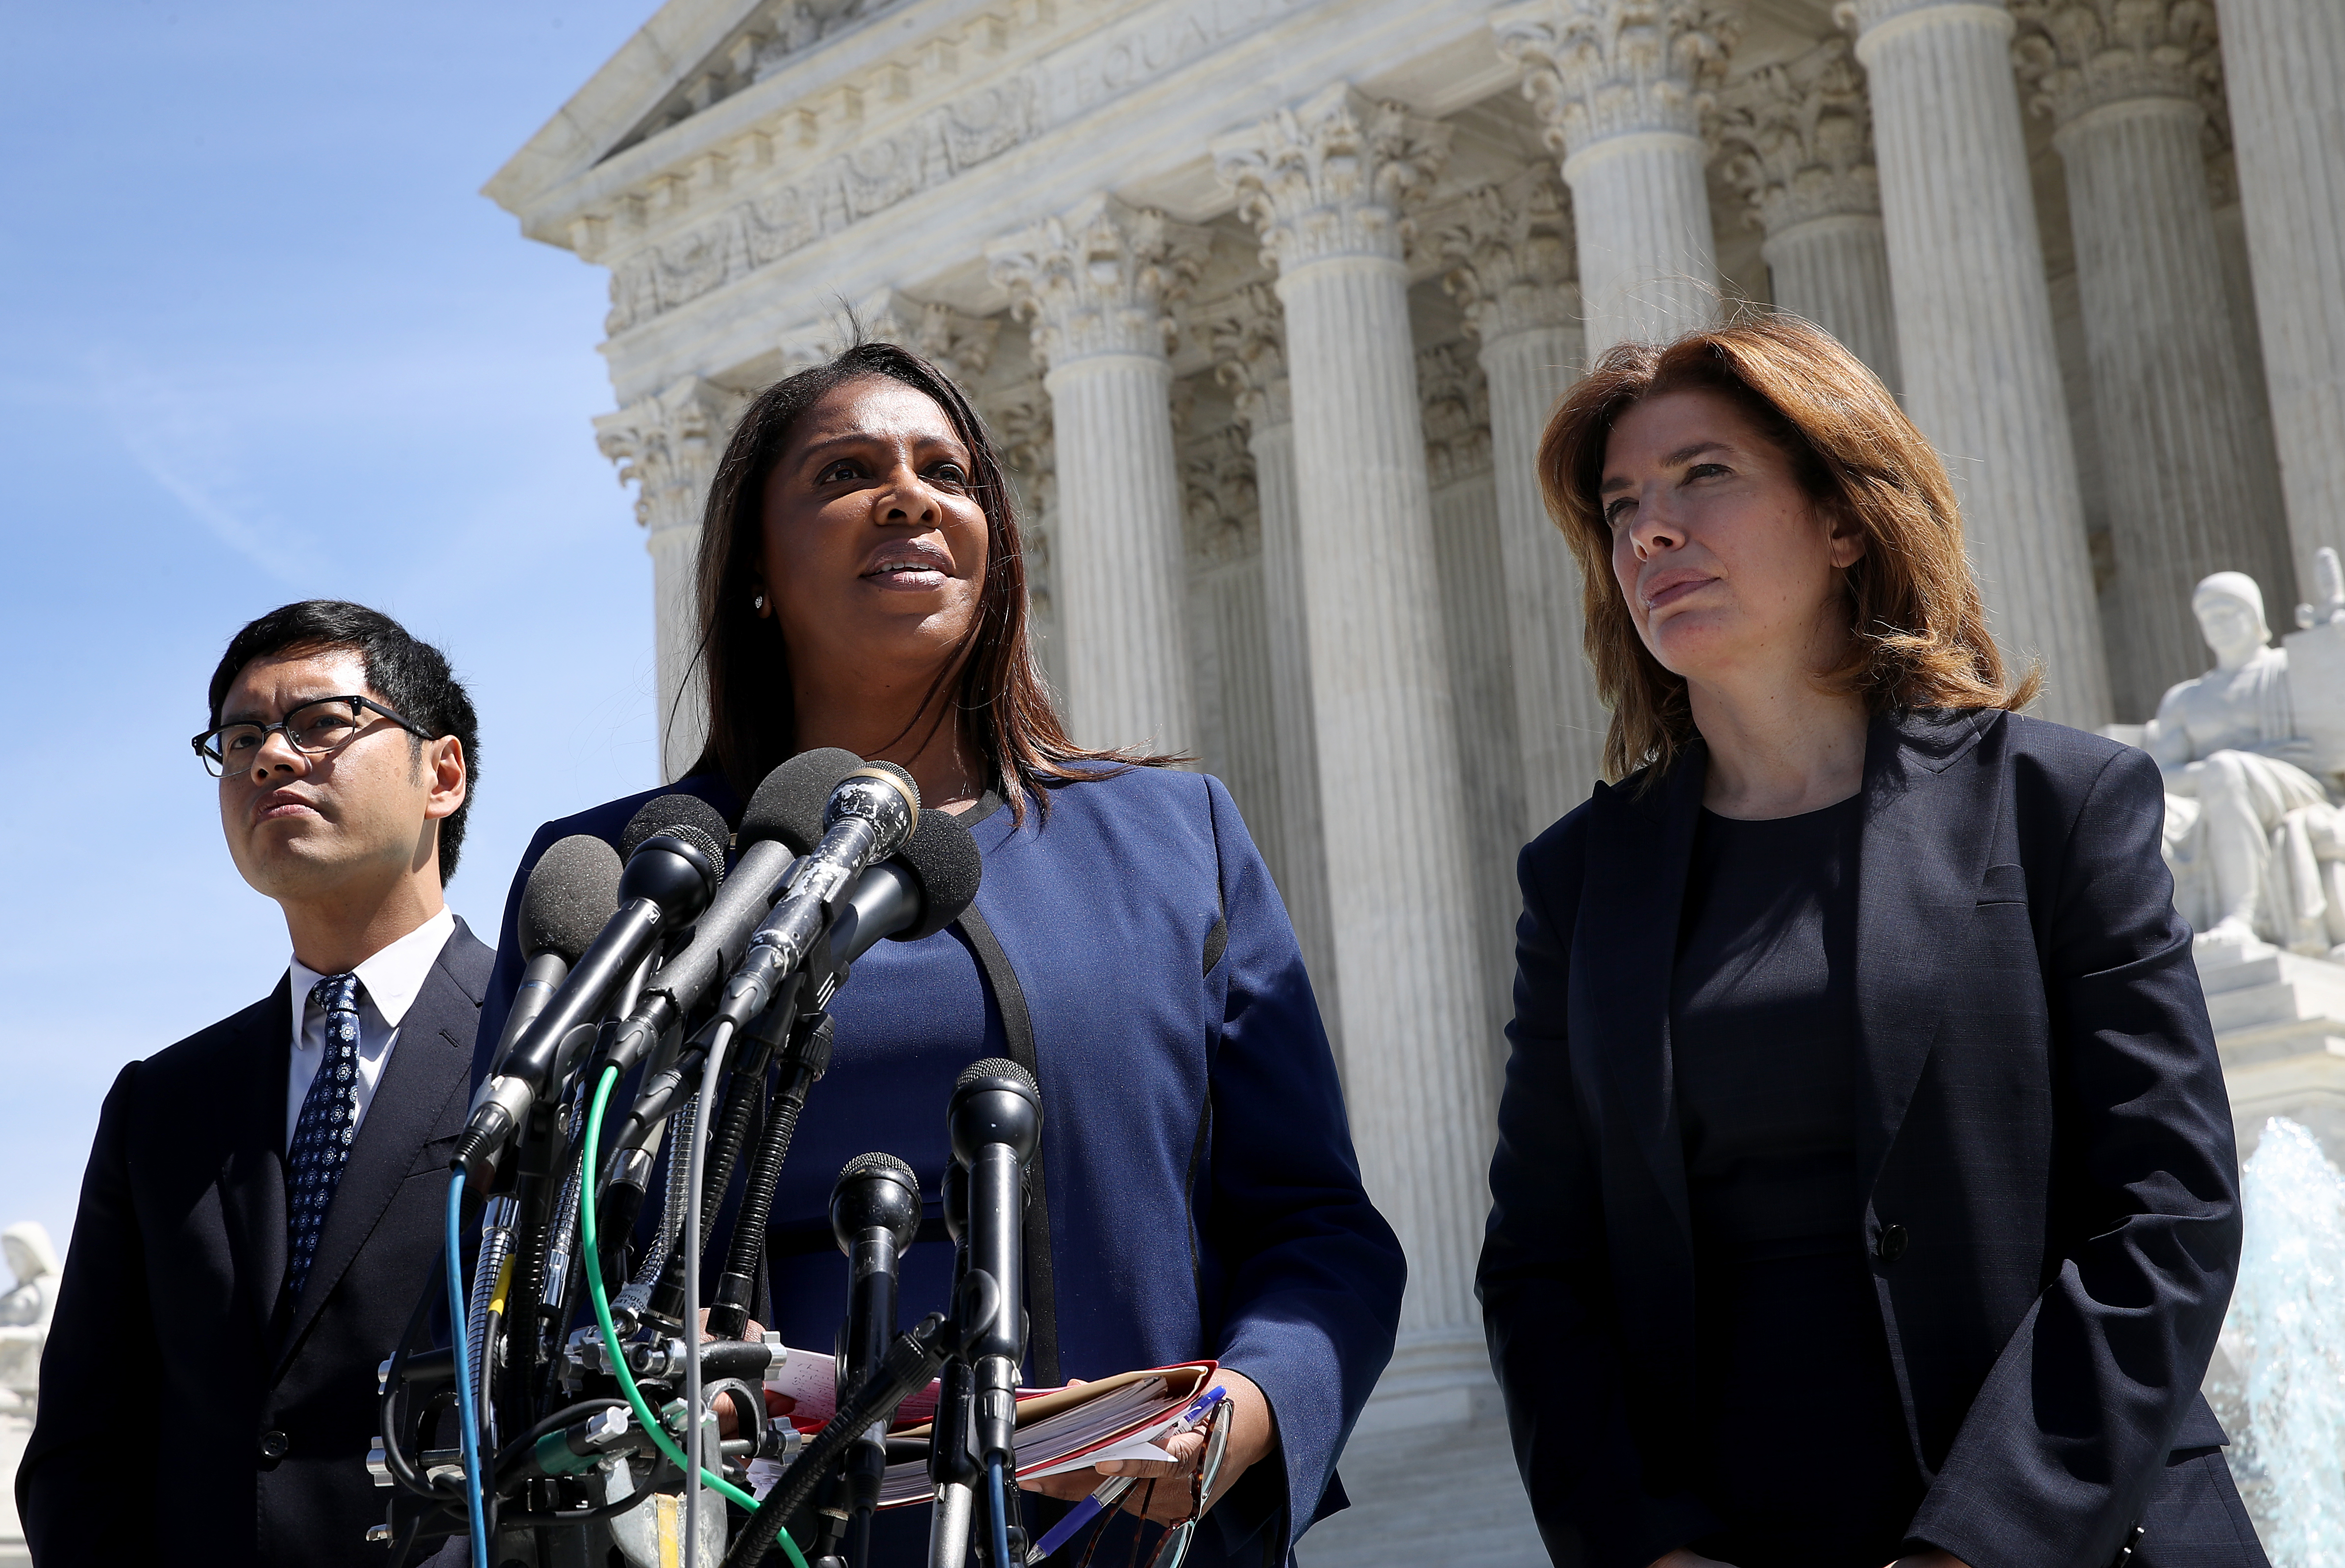 New York Attorney General Letitia James (C), New York Census Director Julie Menin (R) and the ACLU's Dale Ho (L) answer questions outside the Supreme Court after arguments in Department of Commerce v. New York on April 23, 2019. (Win McNamee/Getty Images)